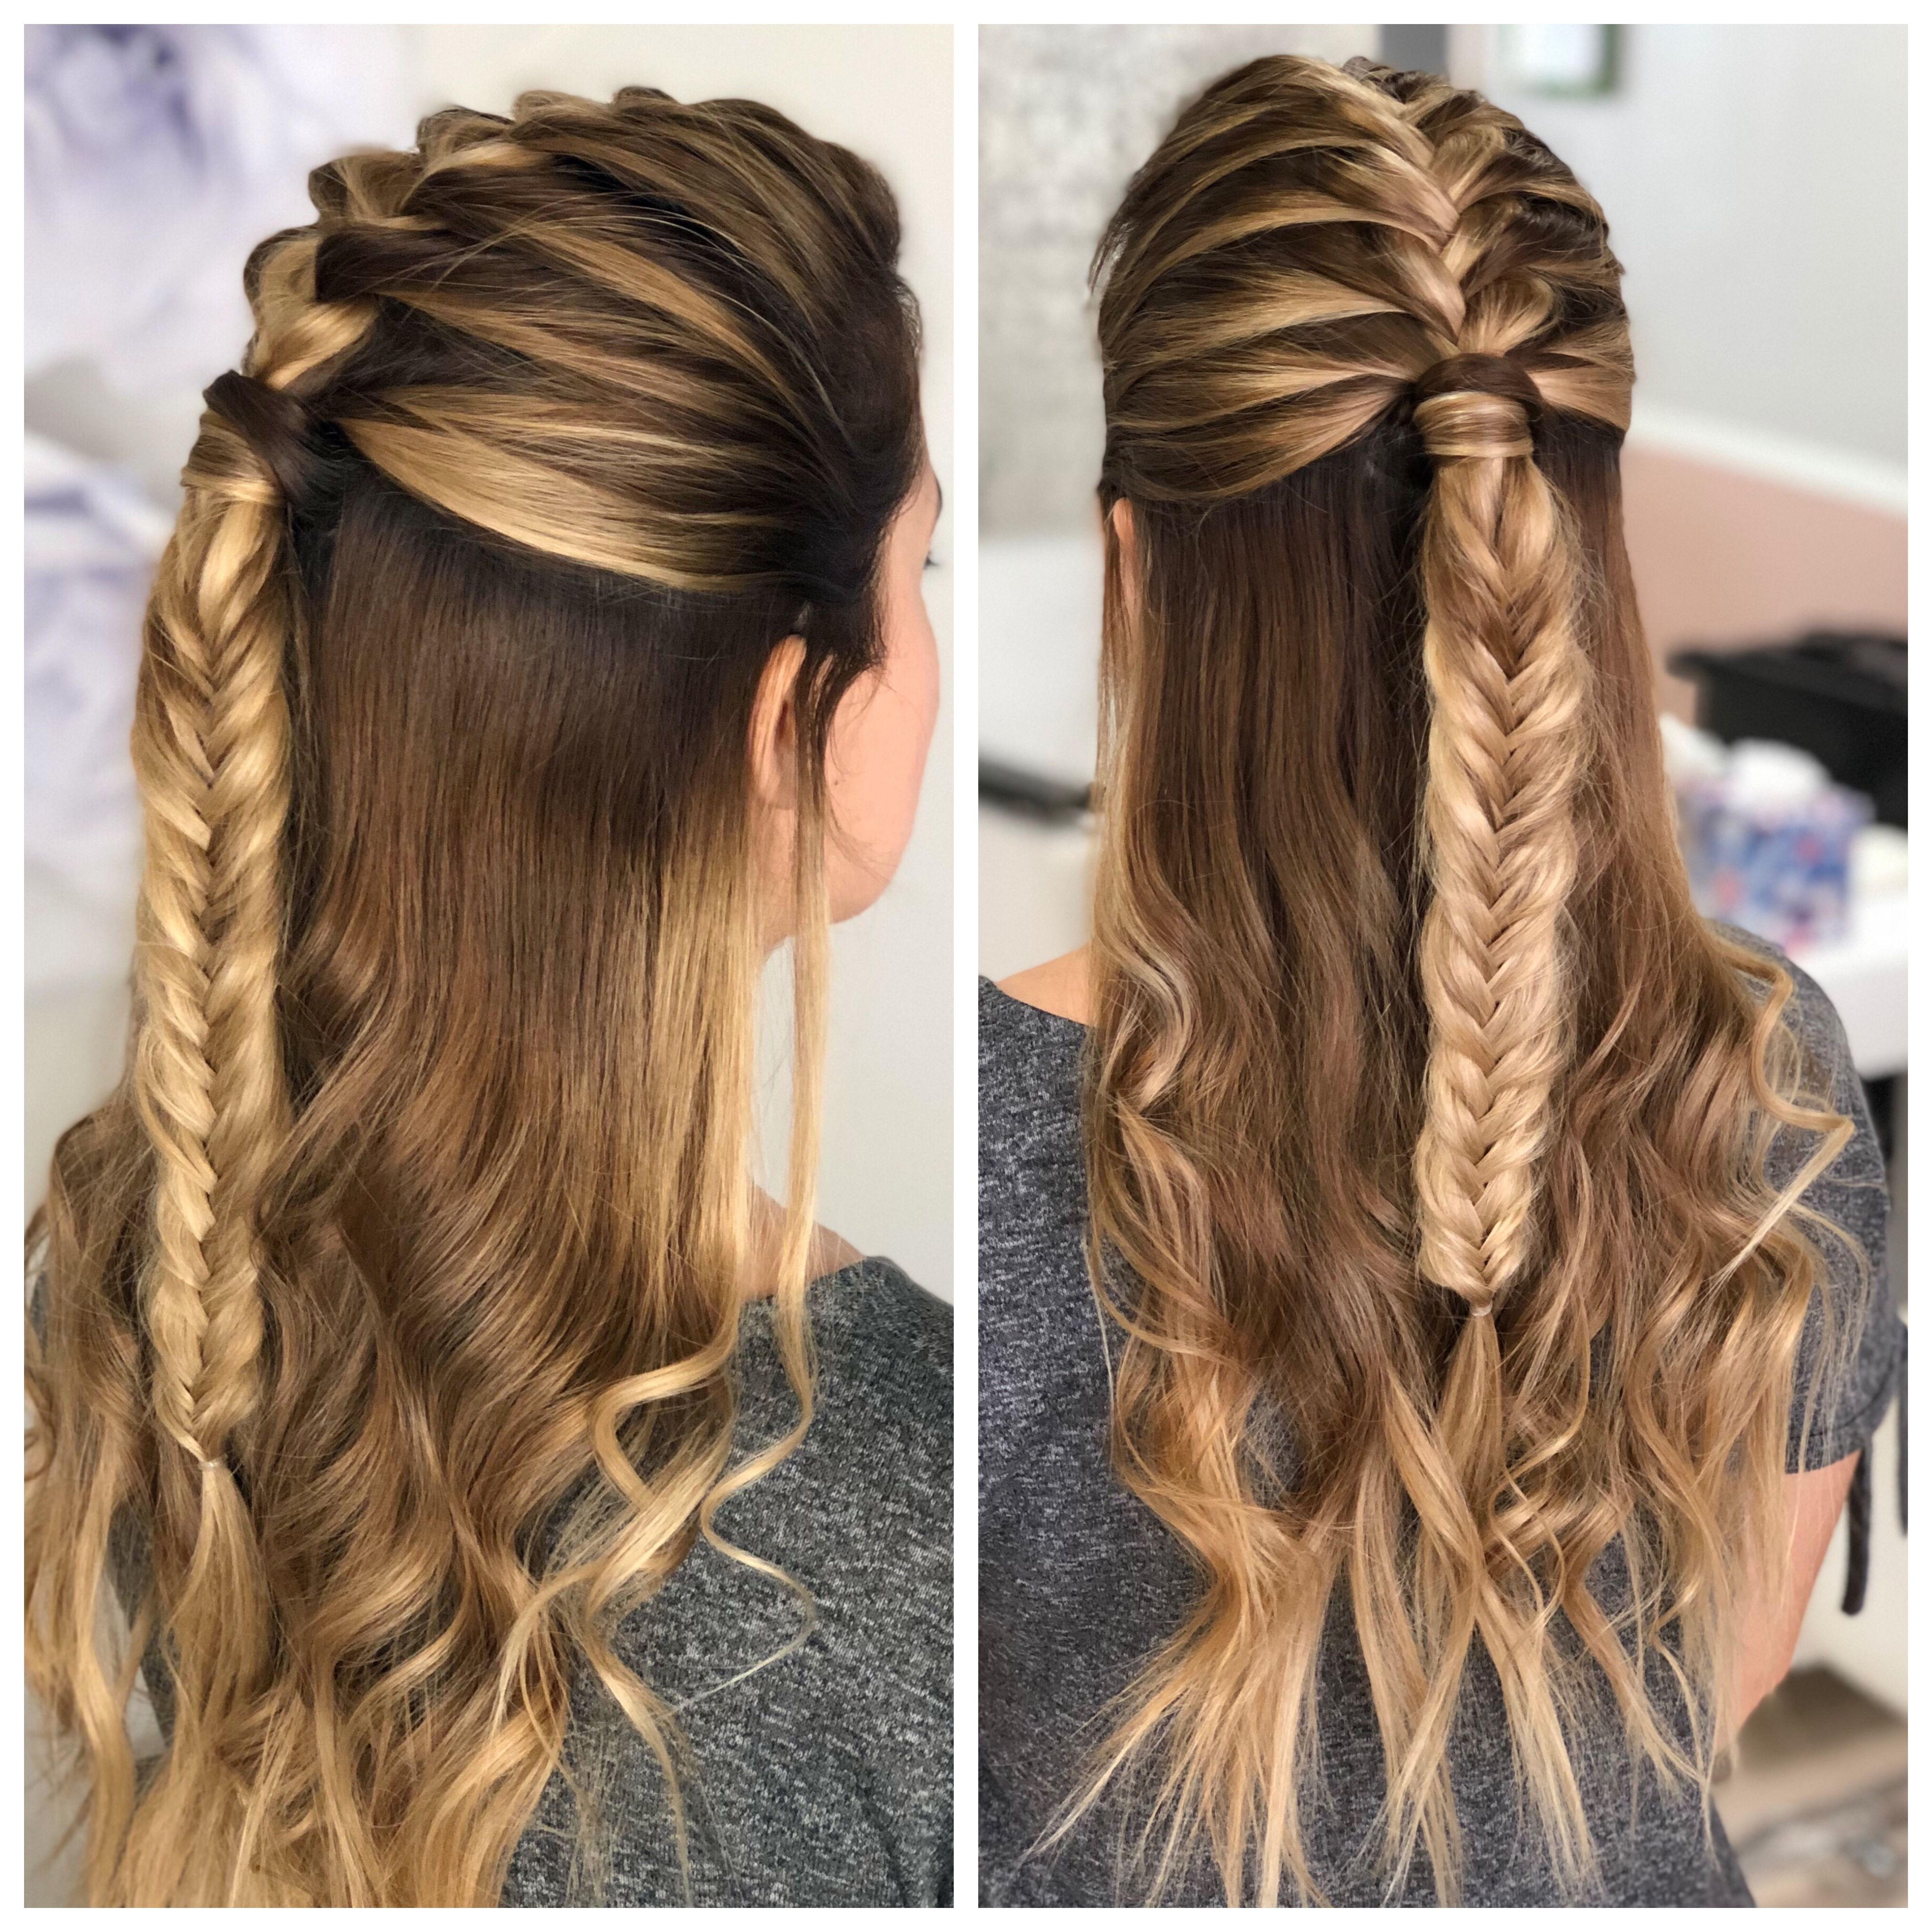 half up hairstyle with french braid and fishtail braid on